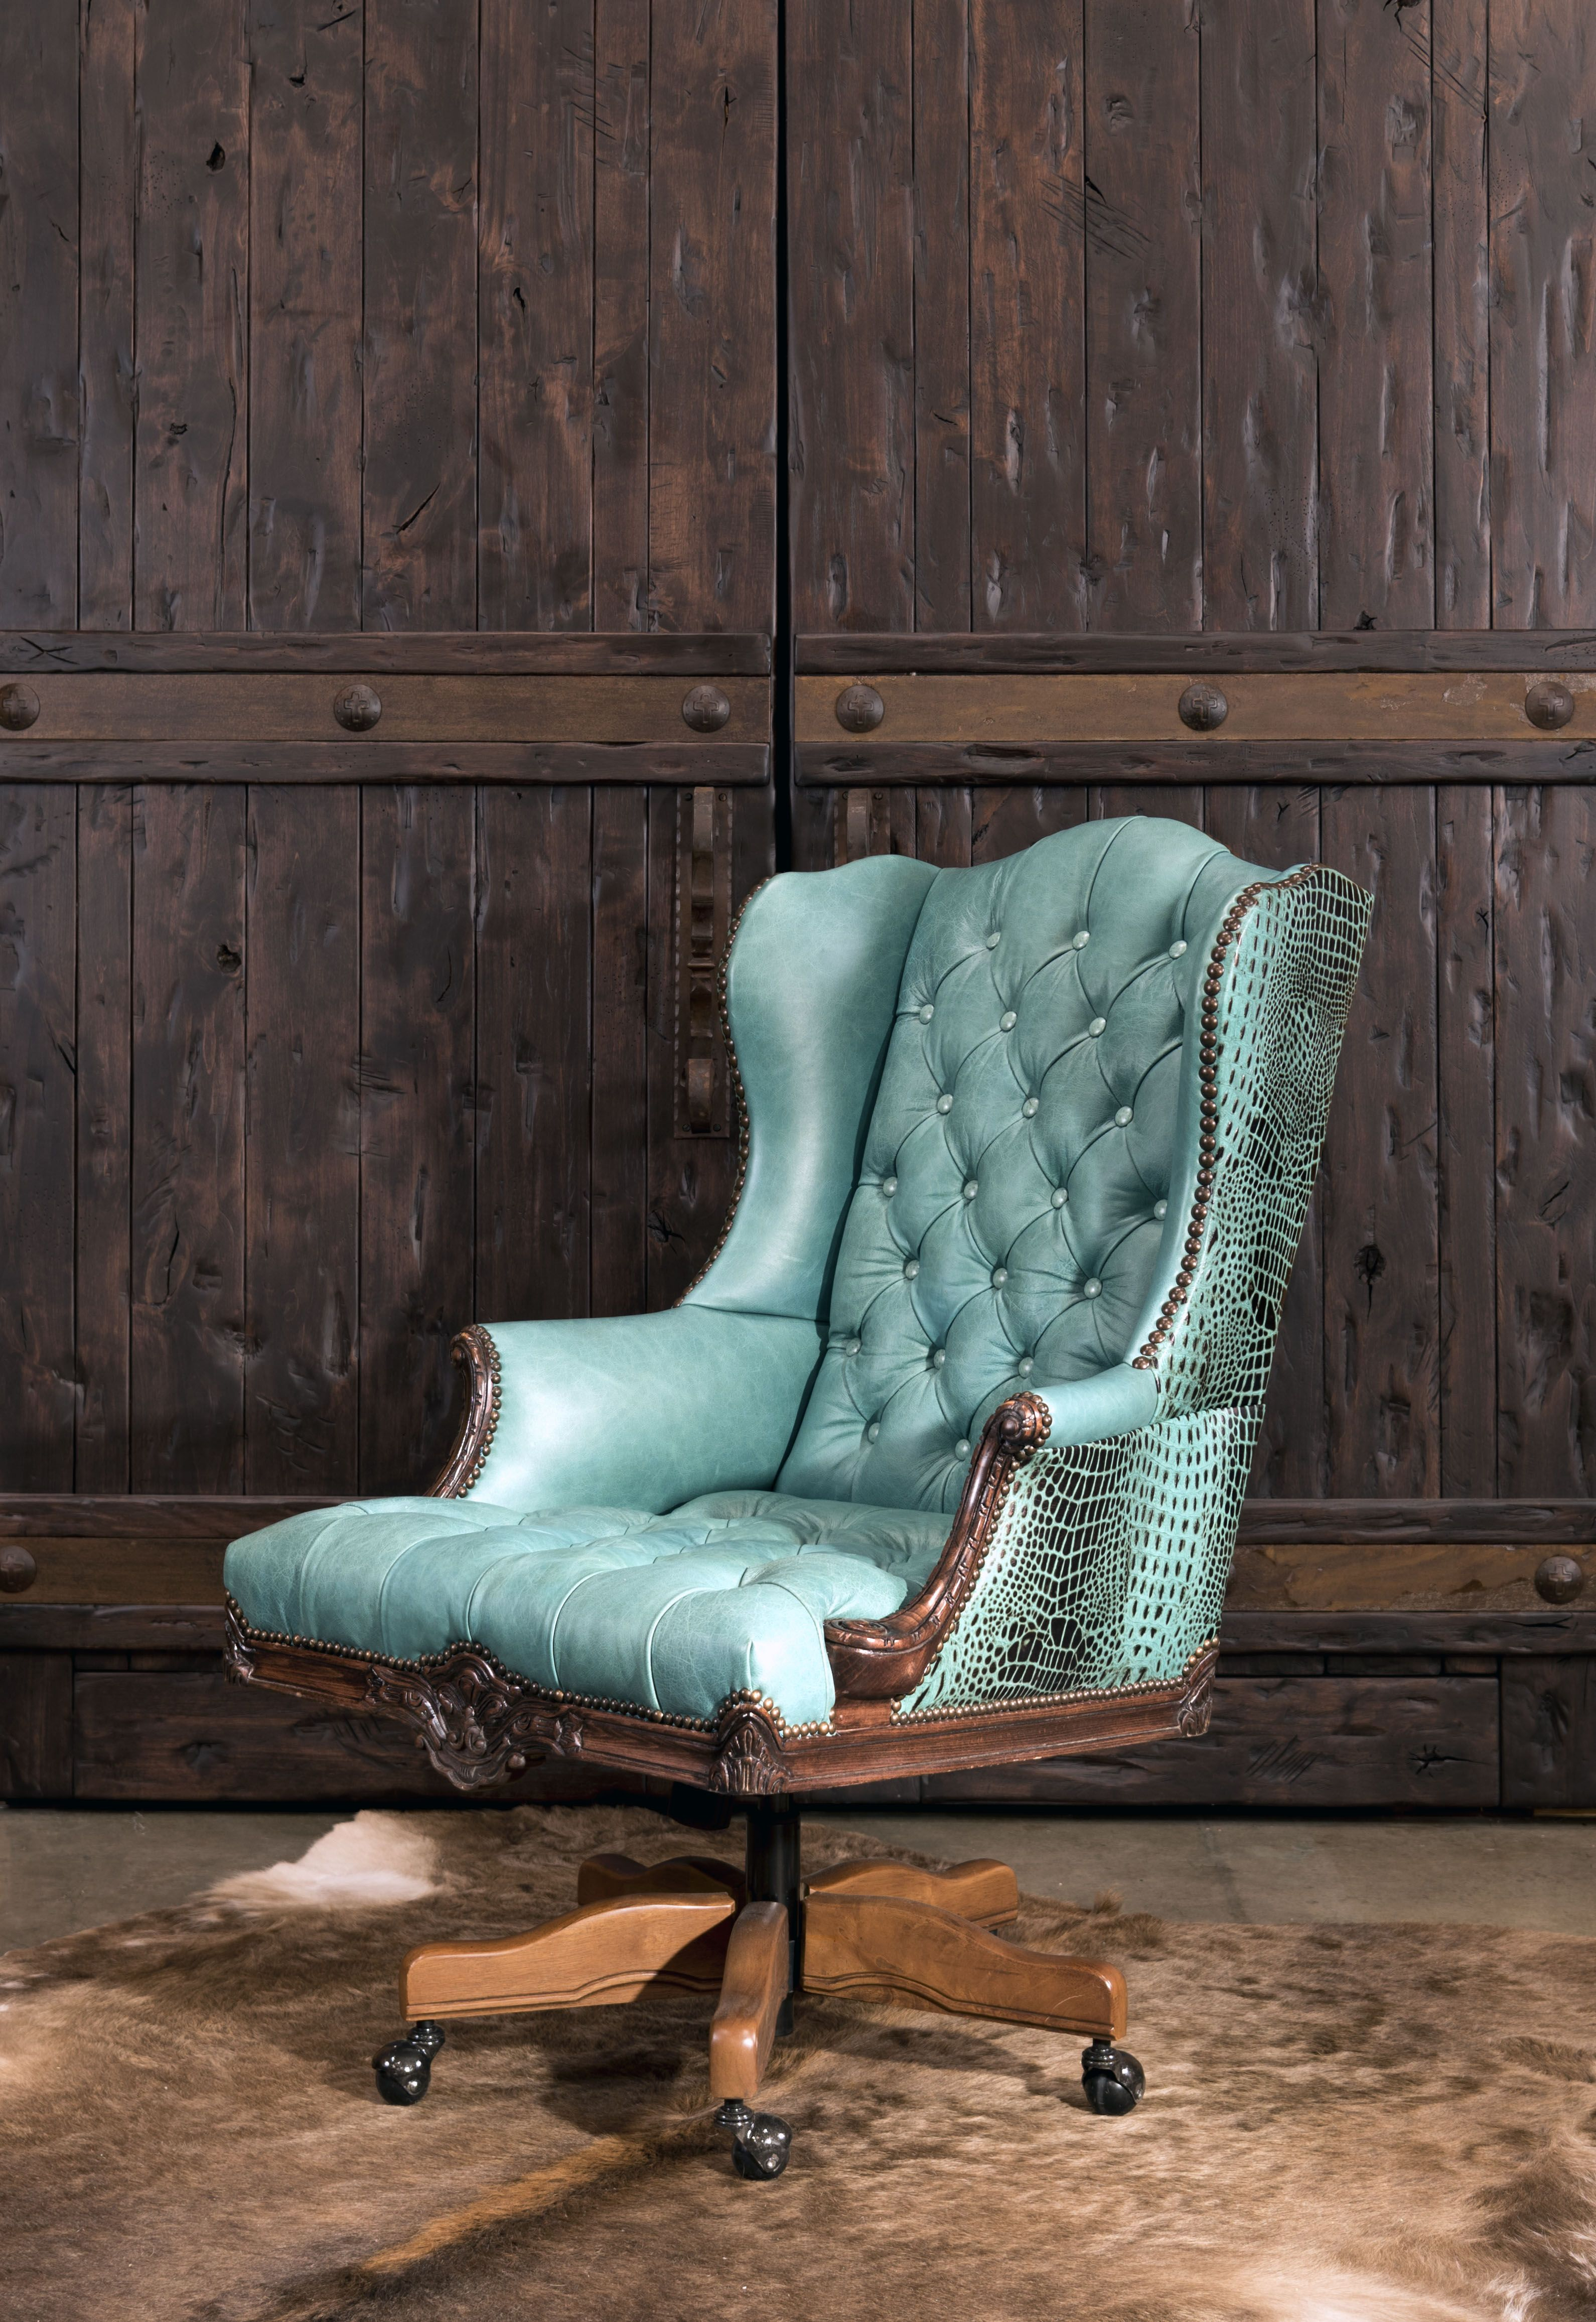 The Chisum Turquoise Executive Desk Chair is the King of